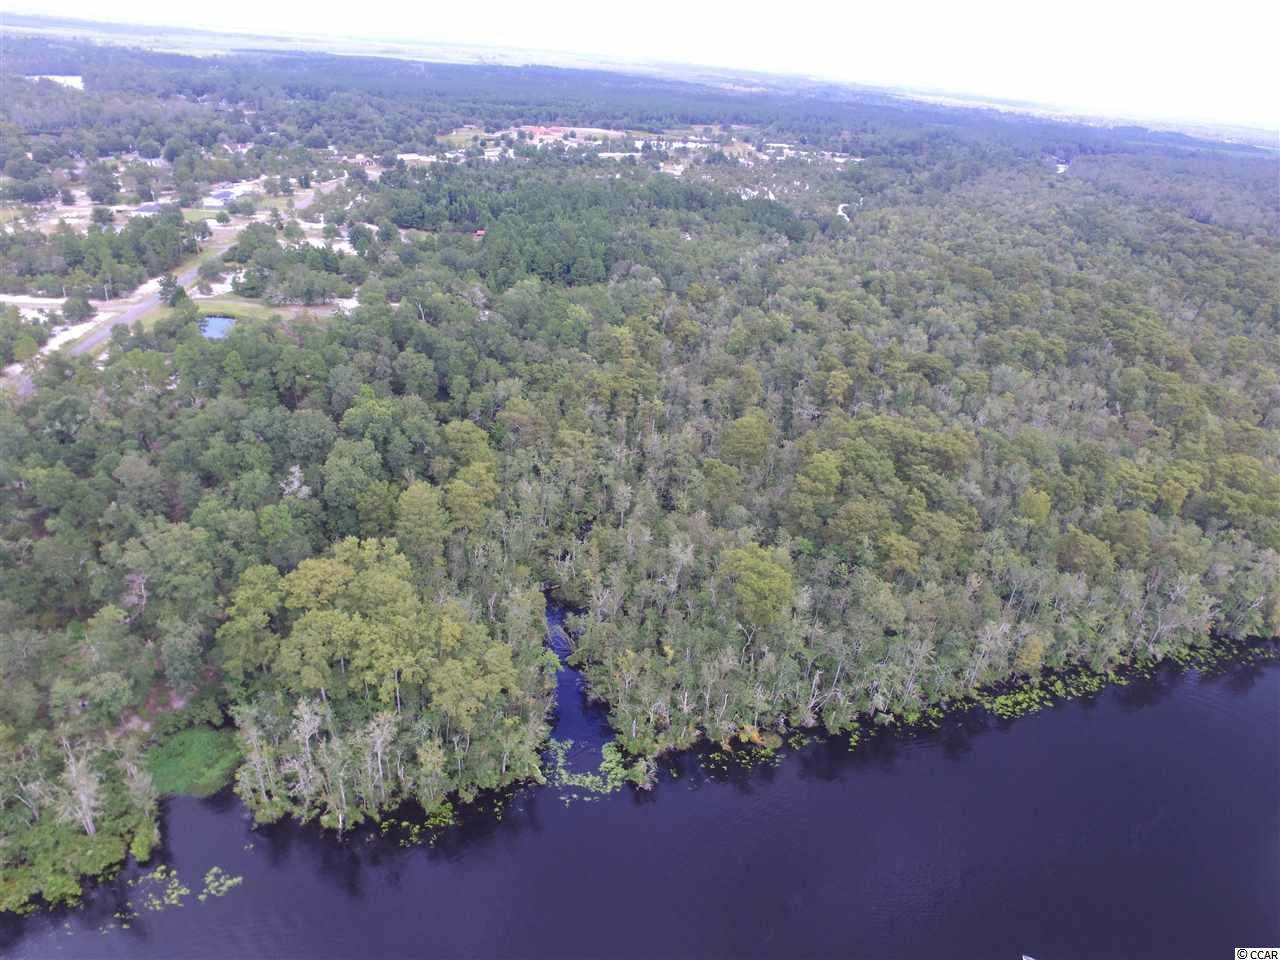 This is a fantastic lot with 375 feet of river frontage along the Black River.  This lot is on a very high bluff with great views of the river and tons of wildlife.  There is a cove that is perfect for a dock.  Don't miss out on this opportunity!